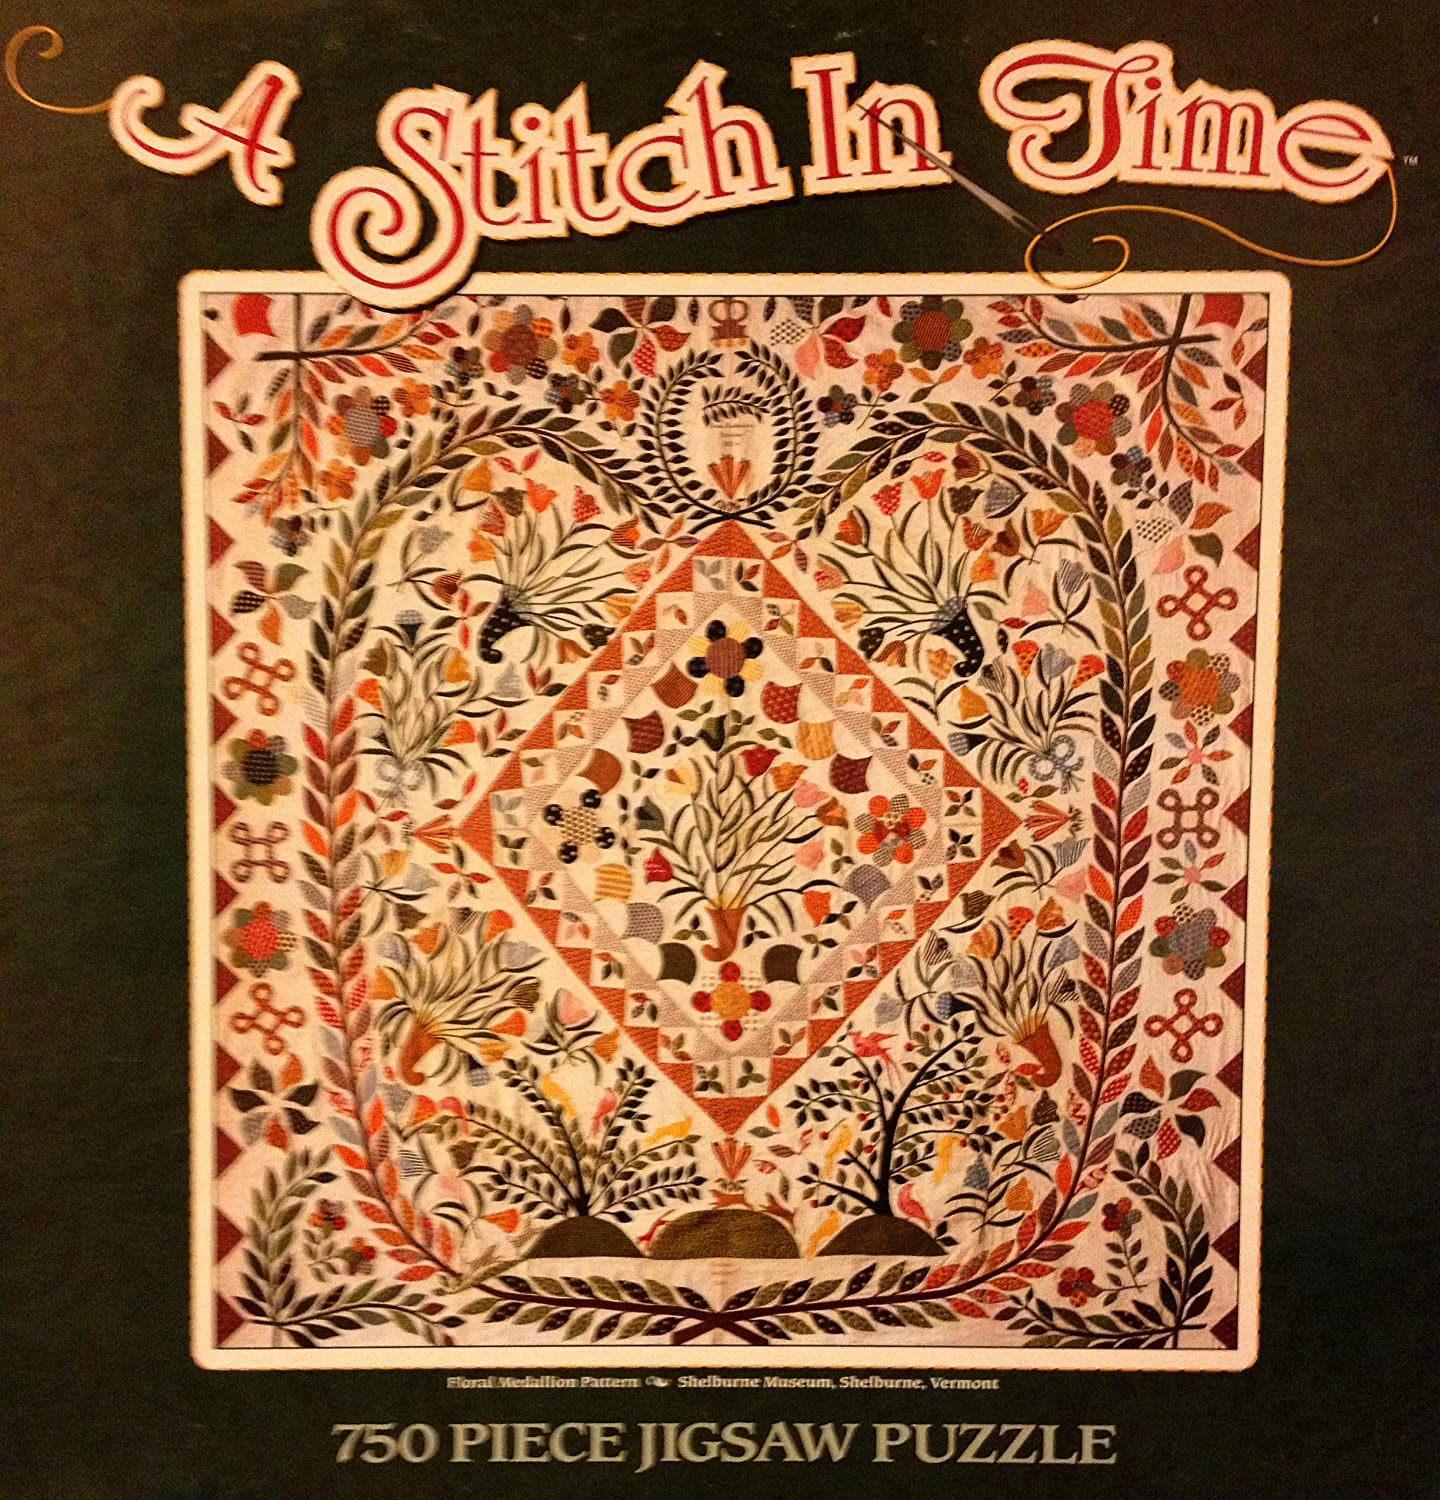 A Stitch in Time 750 Piece Puzzle Floral Medallion Pattern, 1814, Shelburne Museum in Vermont